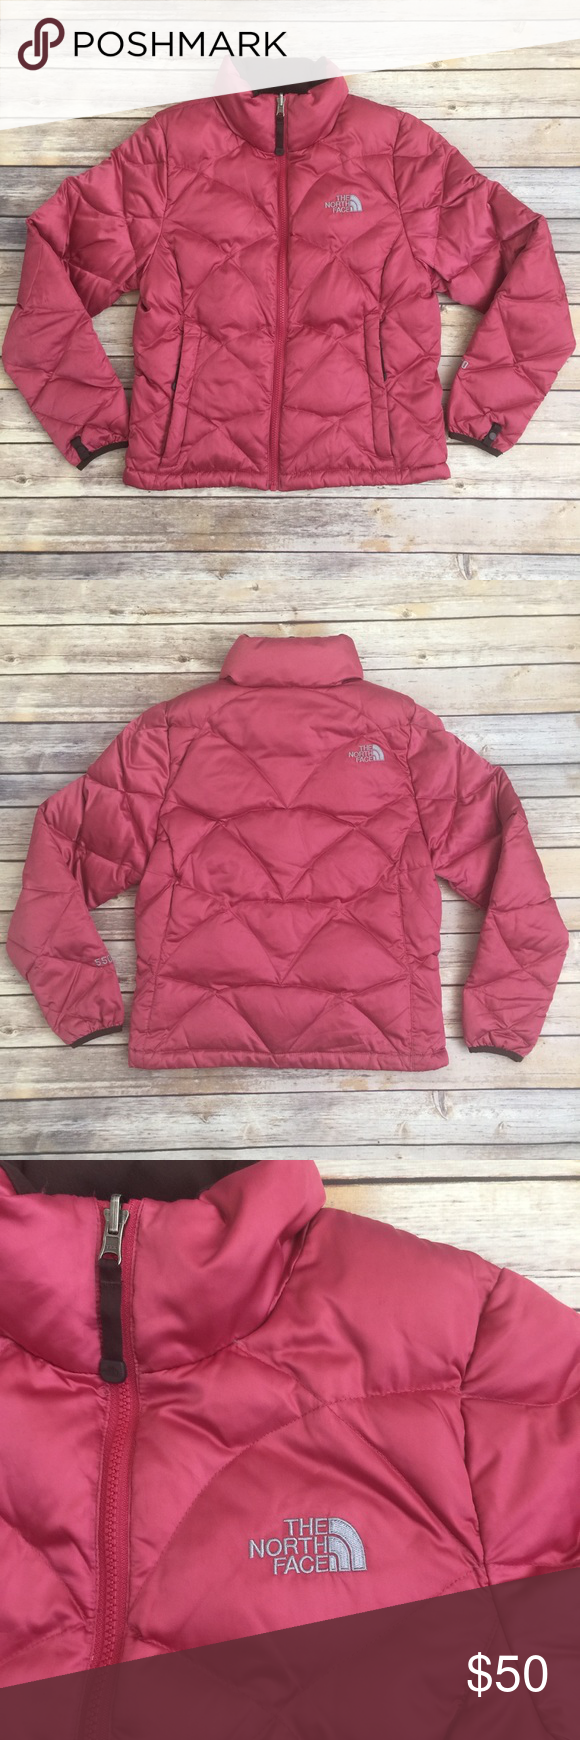 The North Face 550 Women S Goose Down Jacket Xs The North Face 550 Women S Goose Down Quilted Jacket Size Xs Pink Gray Embro Jackets Quilted Jacket Down Jacket [ 1740 x 580 Pixel ]